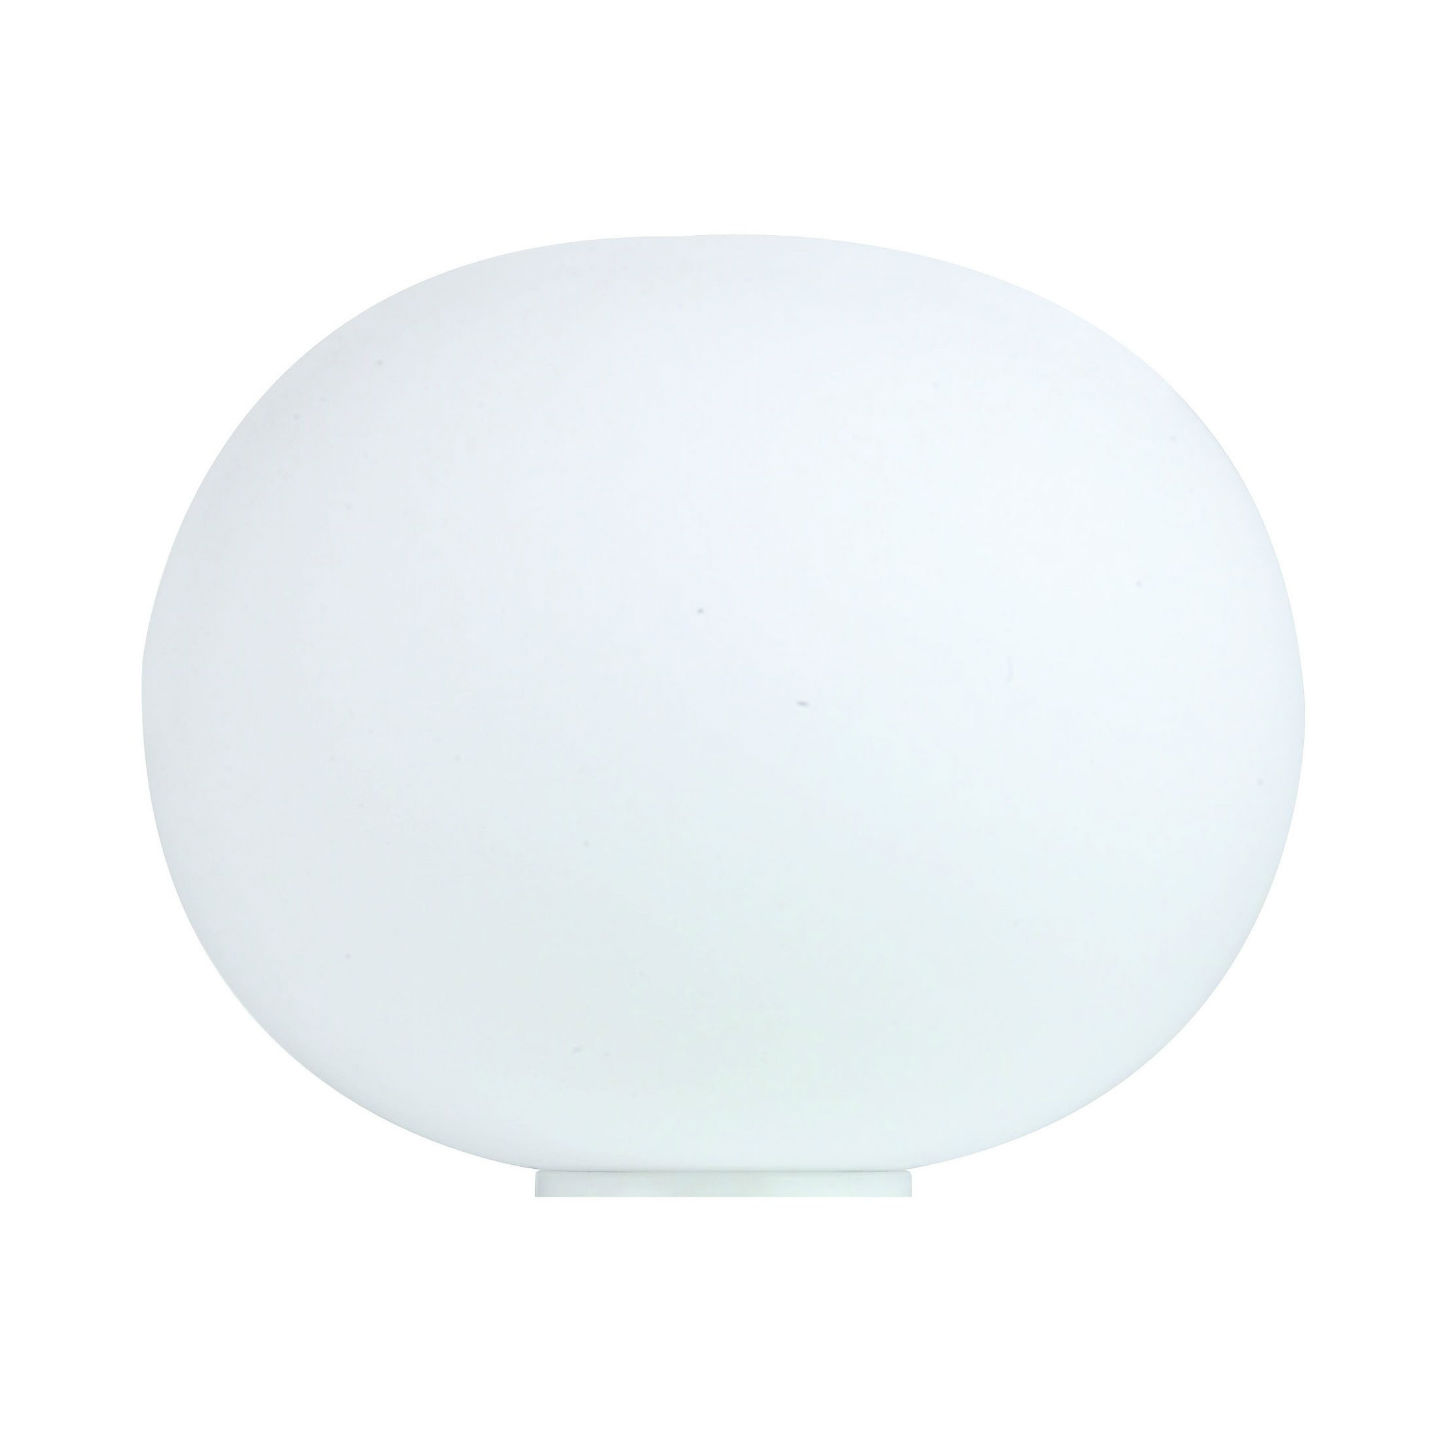 Glo Ball Basic Zero Lampe de table 19cm E14 60W avec commutateur - blanc opale